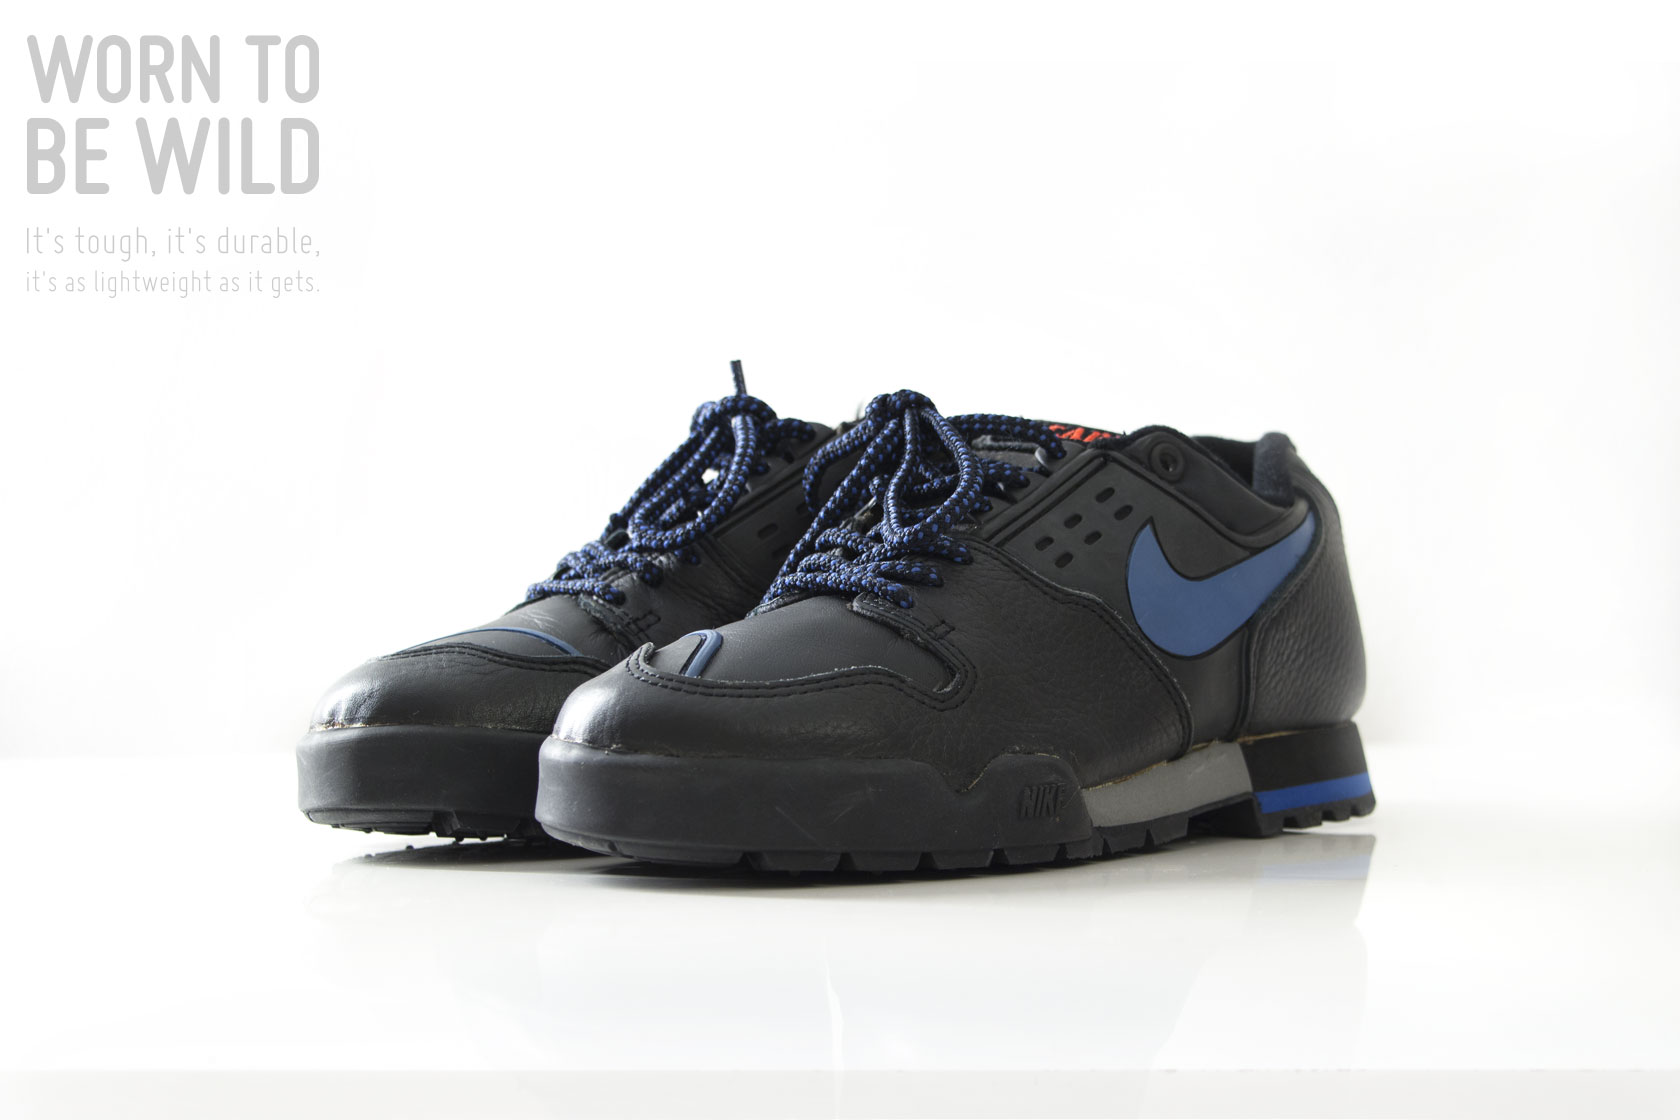 buy online af5f4 f1ba3 WORN TO BE WILD » Nike Son of Lava Dome Escape